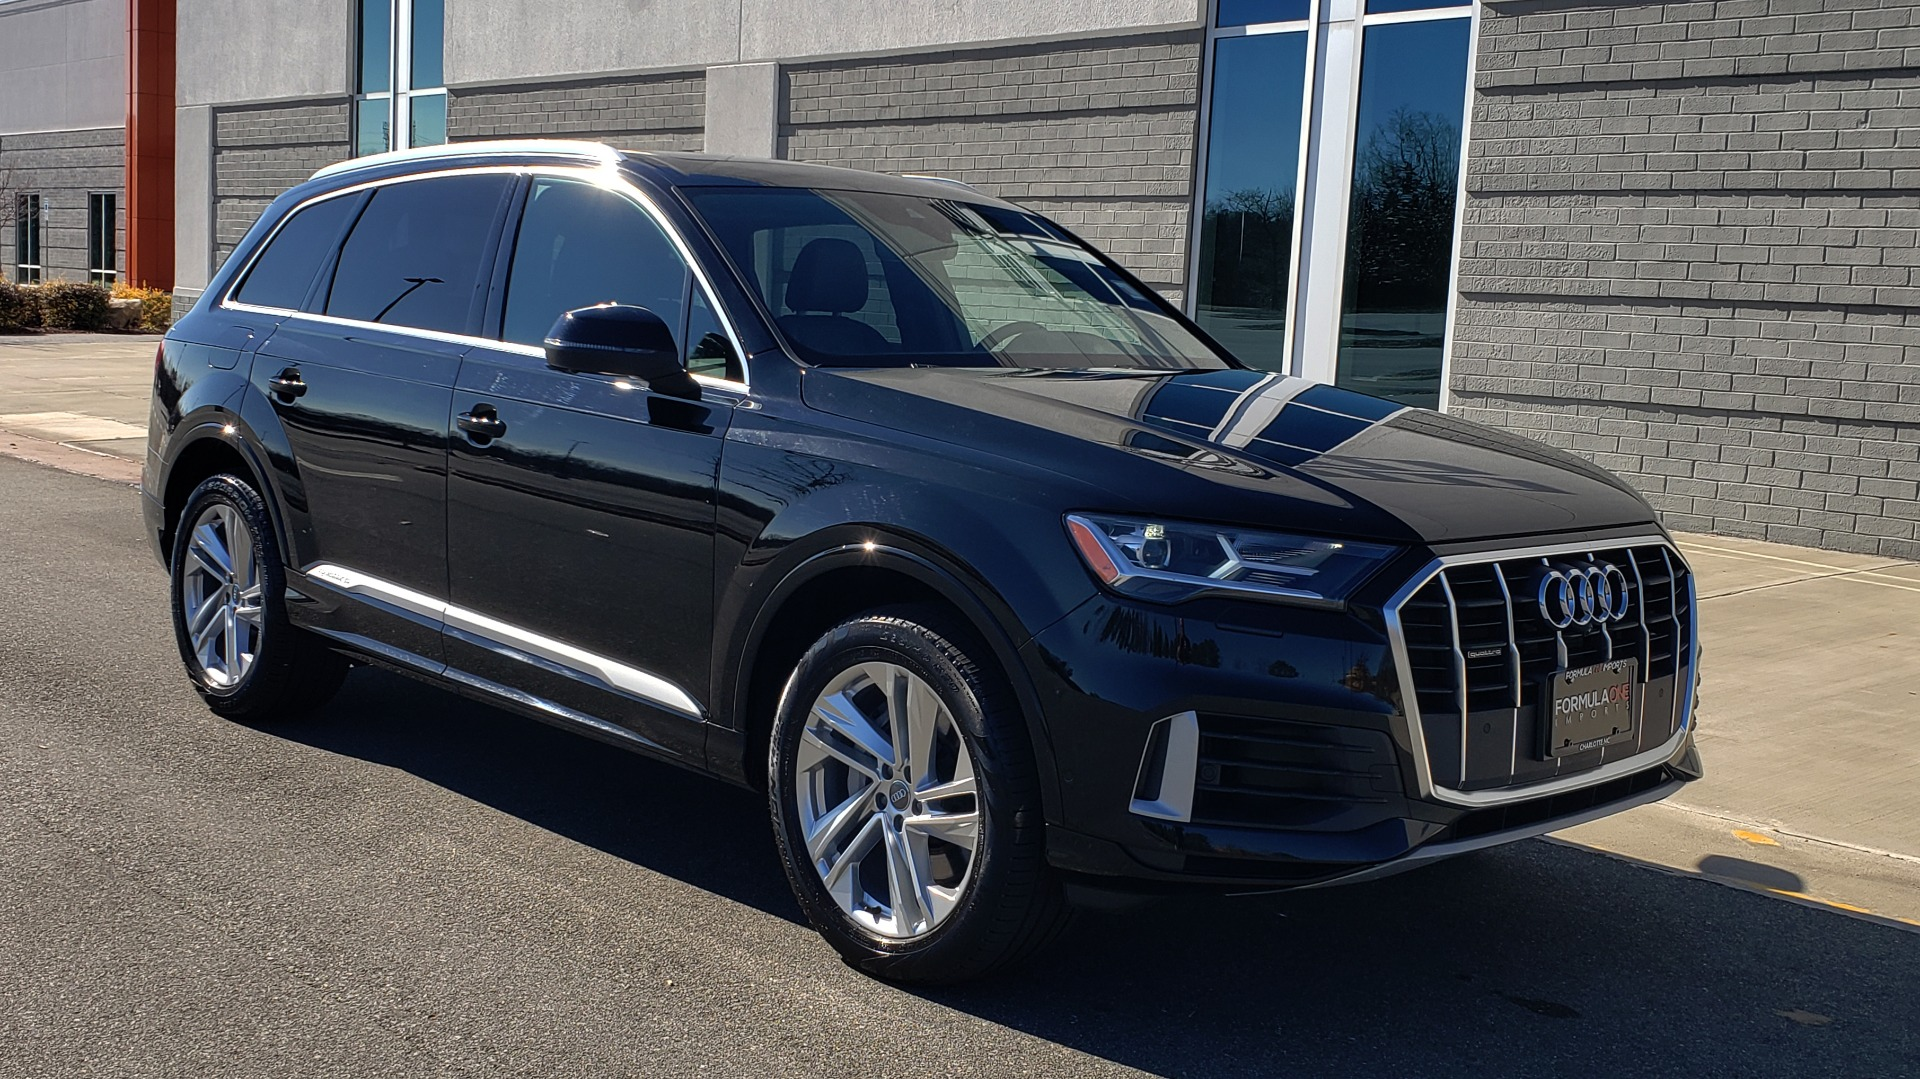 Used 2020 Audi Q7 PREMIUM PLUS / NAV / SUNROOF / 3-ROW / REARVIEW for sale Sold at Formula Imports in Charlotte NC 28227 6